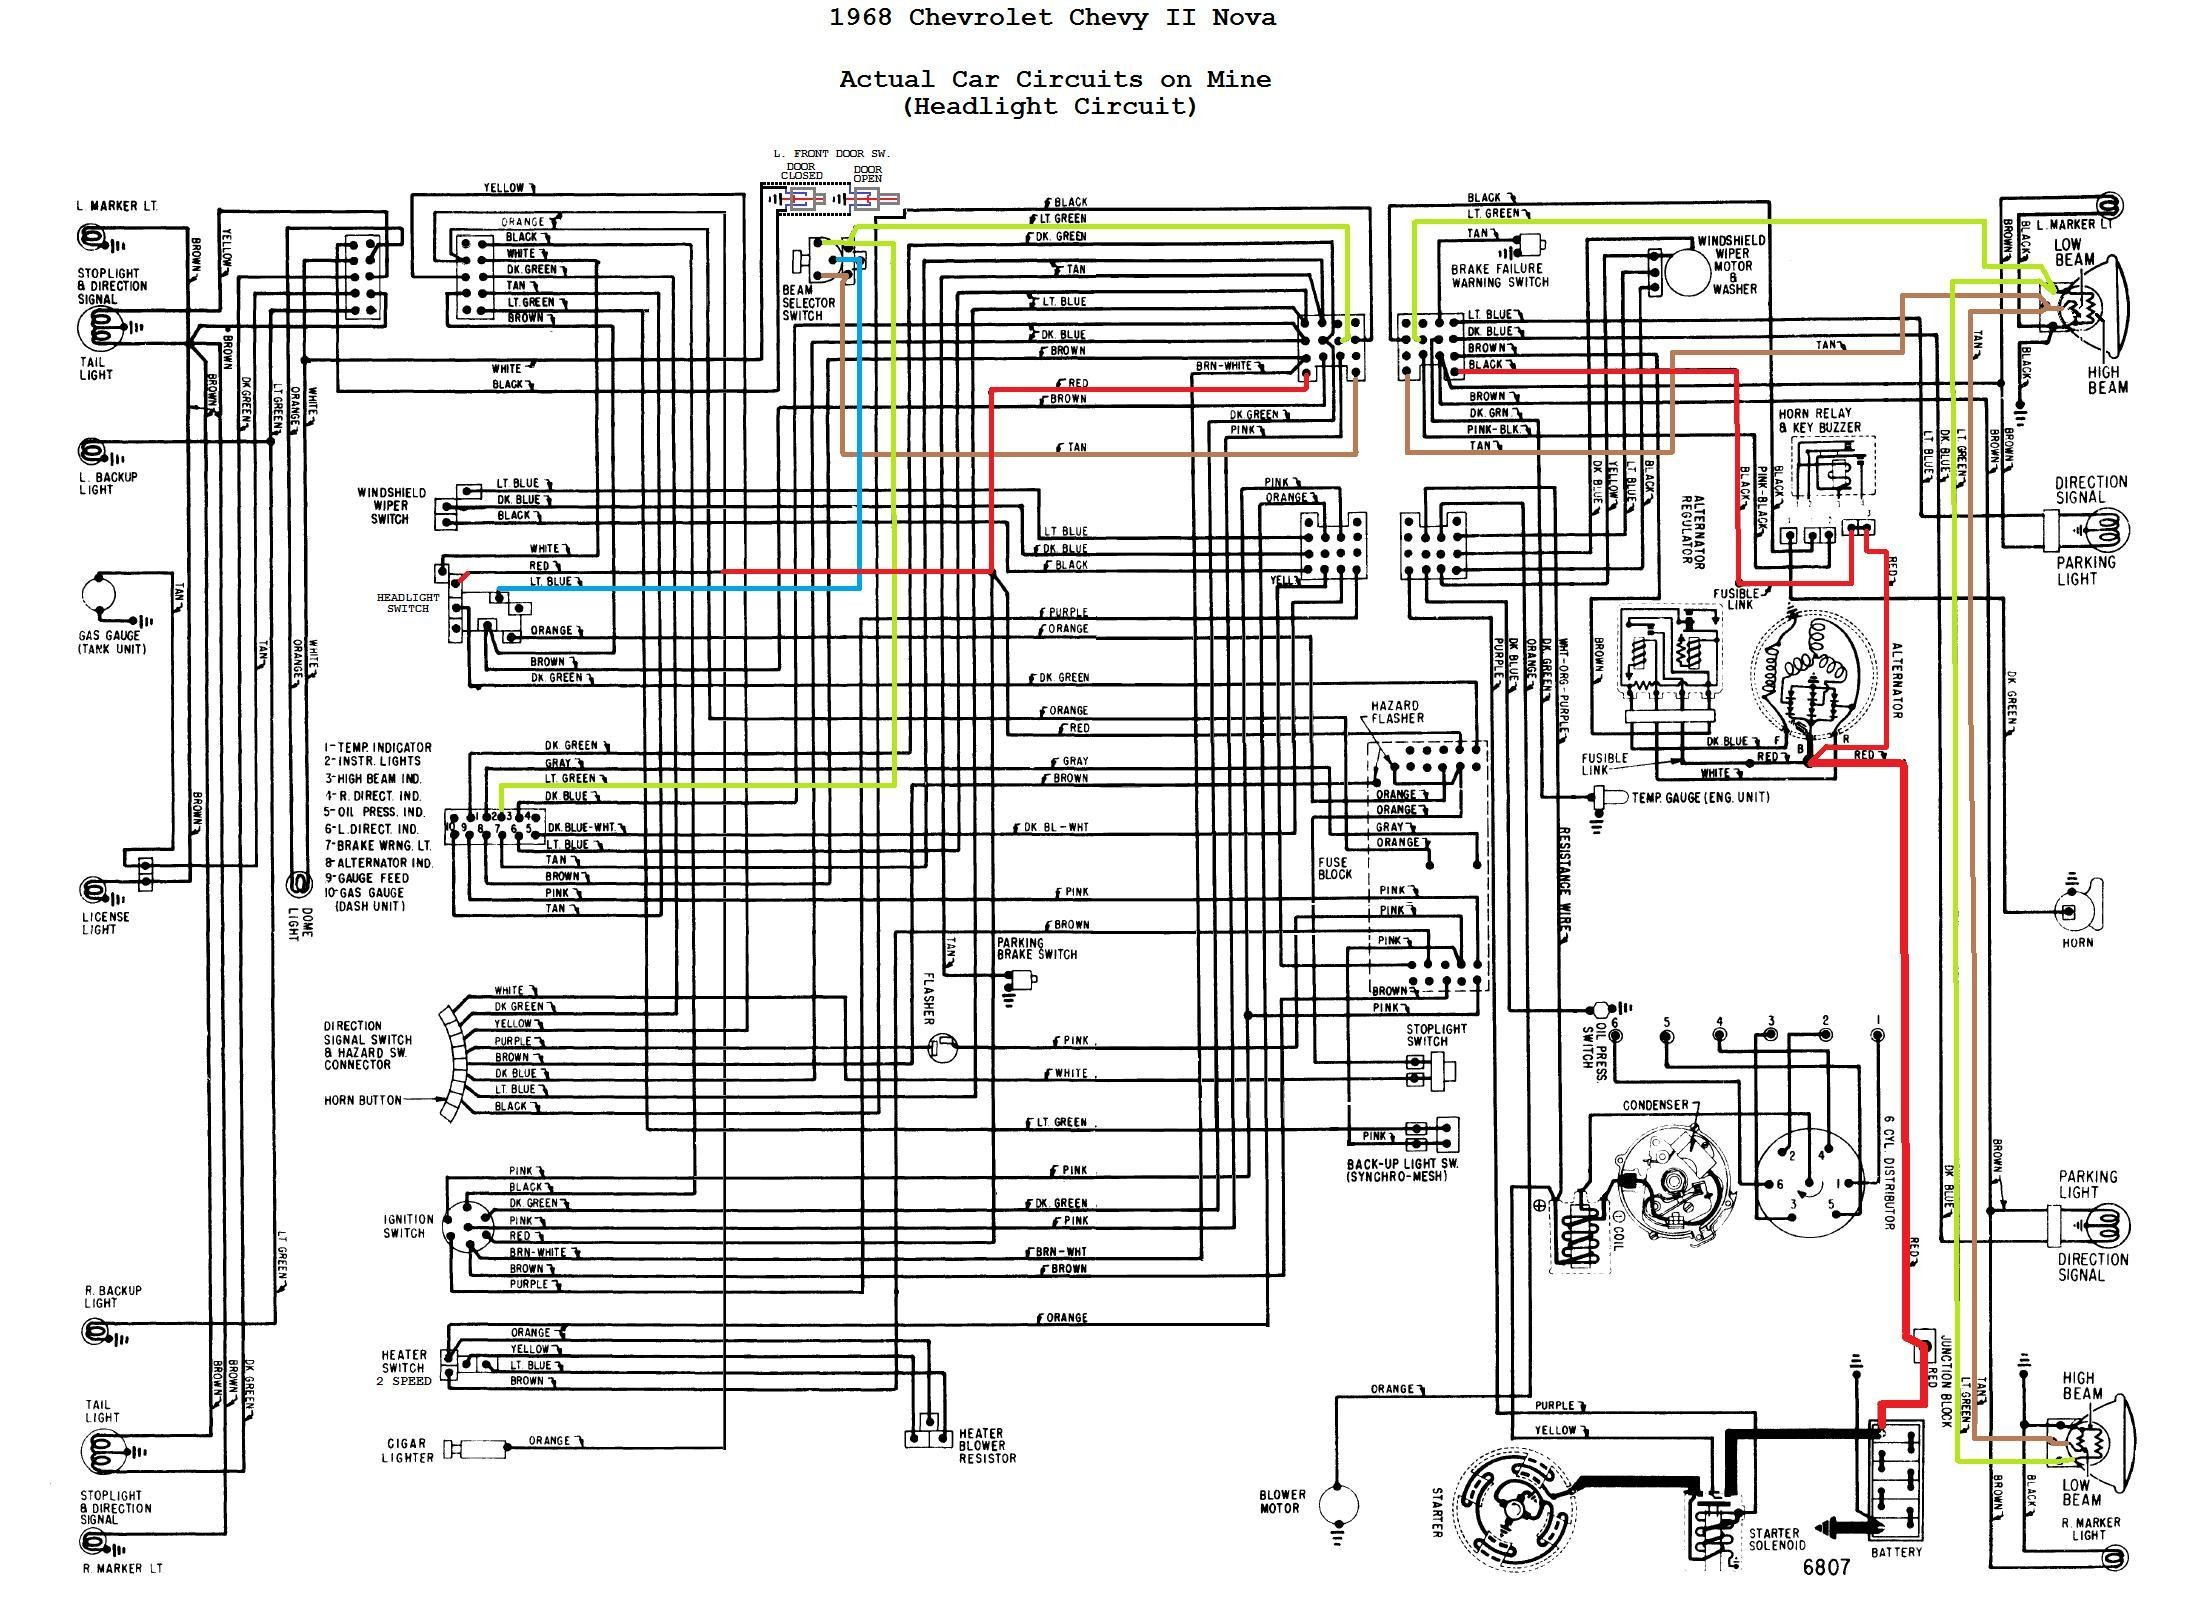 1971 Chevy 4x4 Wiring Diagram Wiring Diagram DataSource